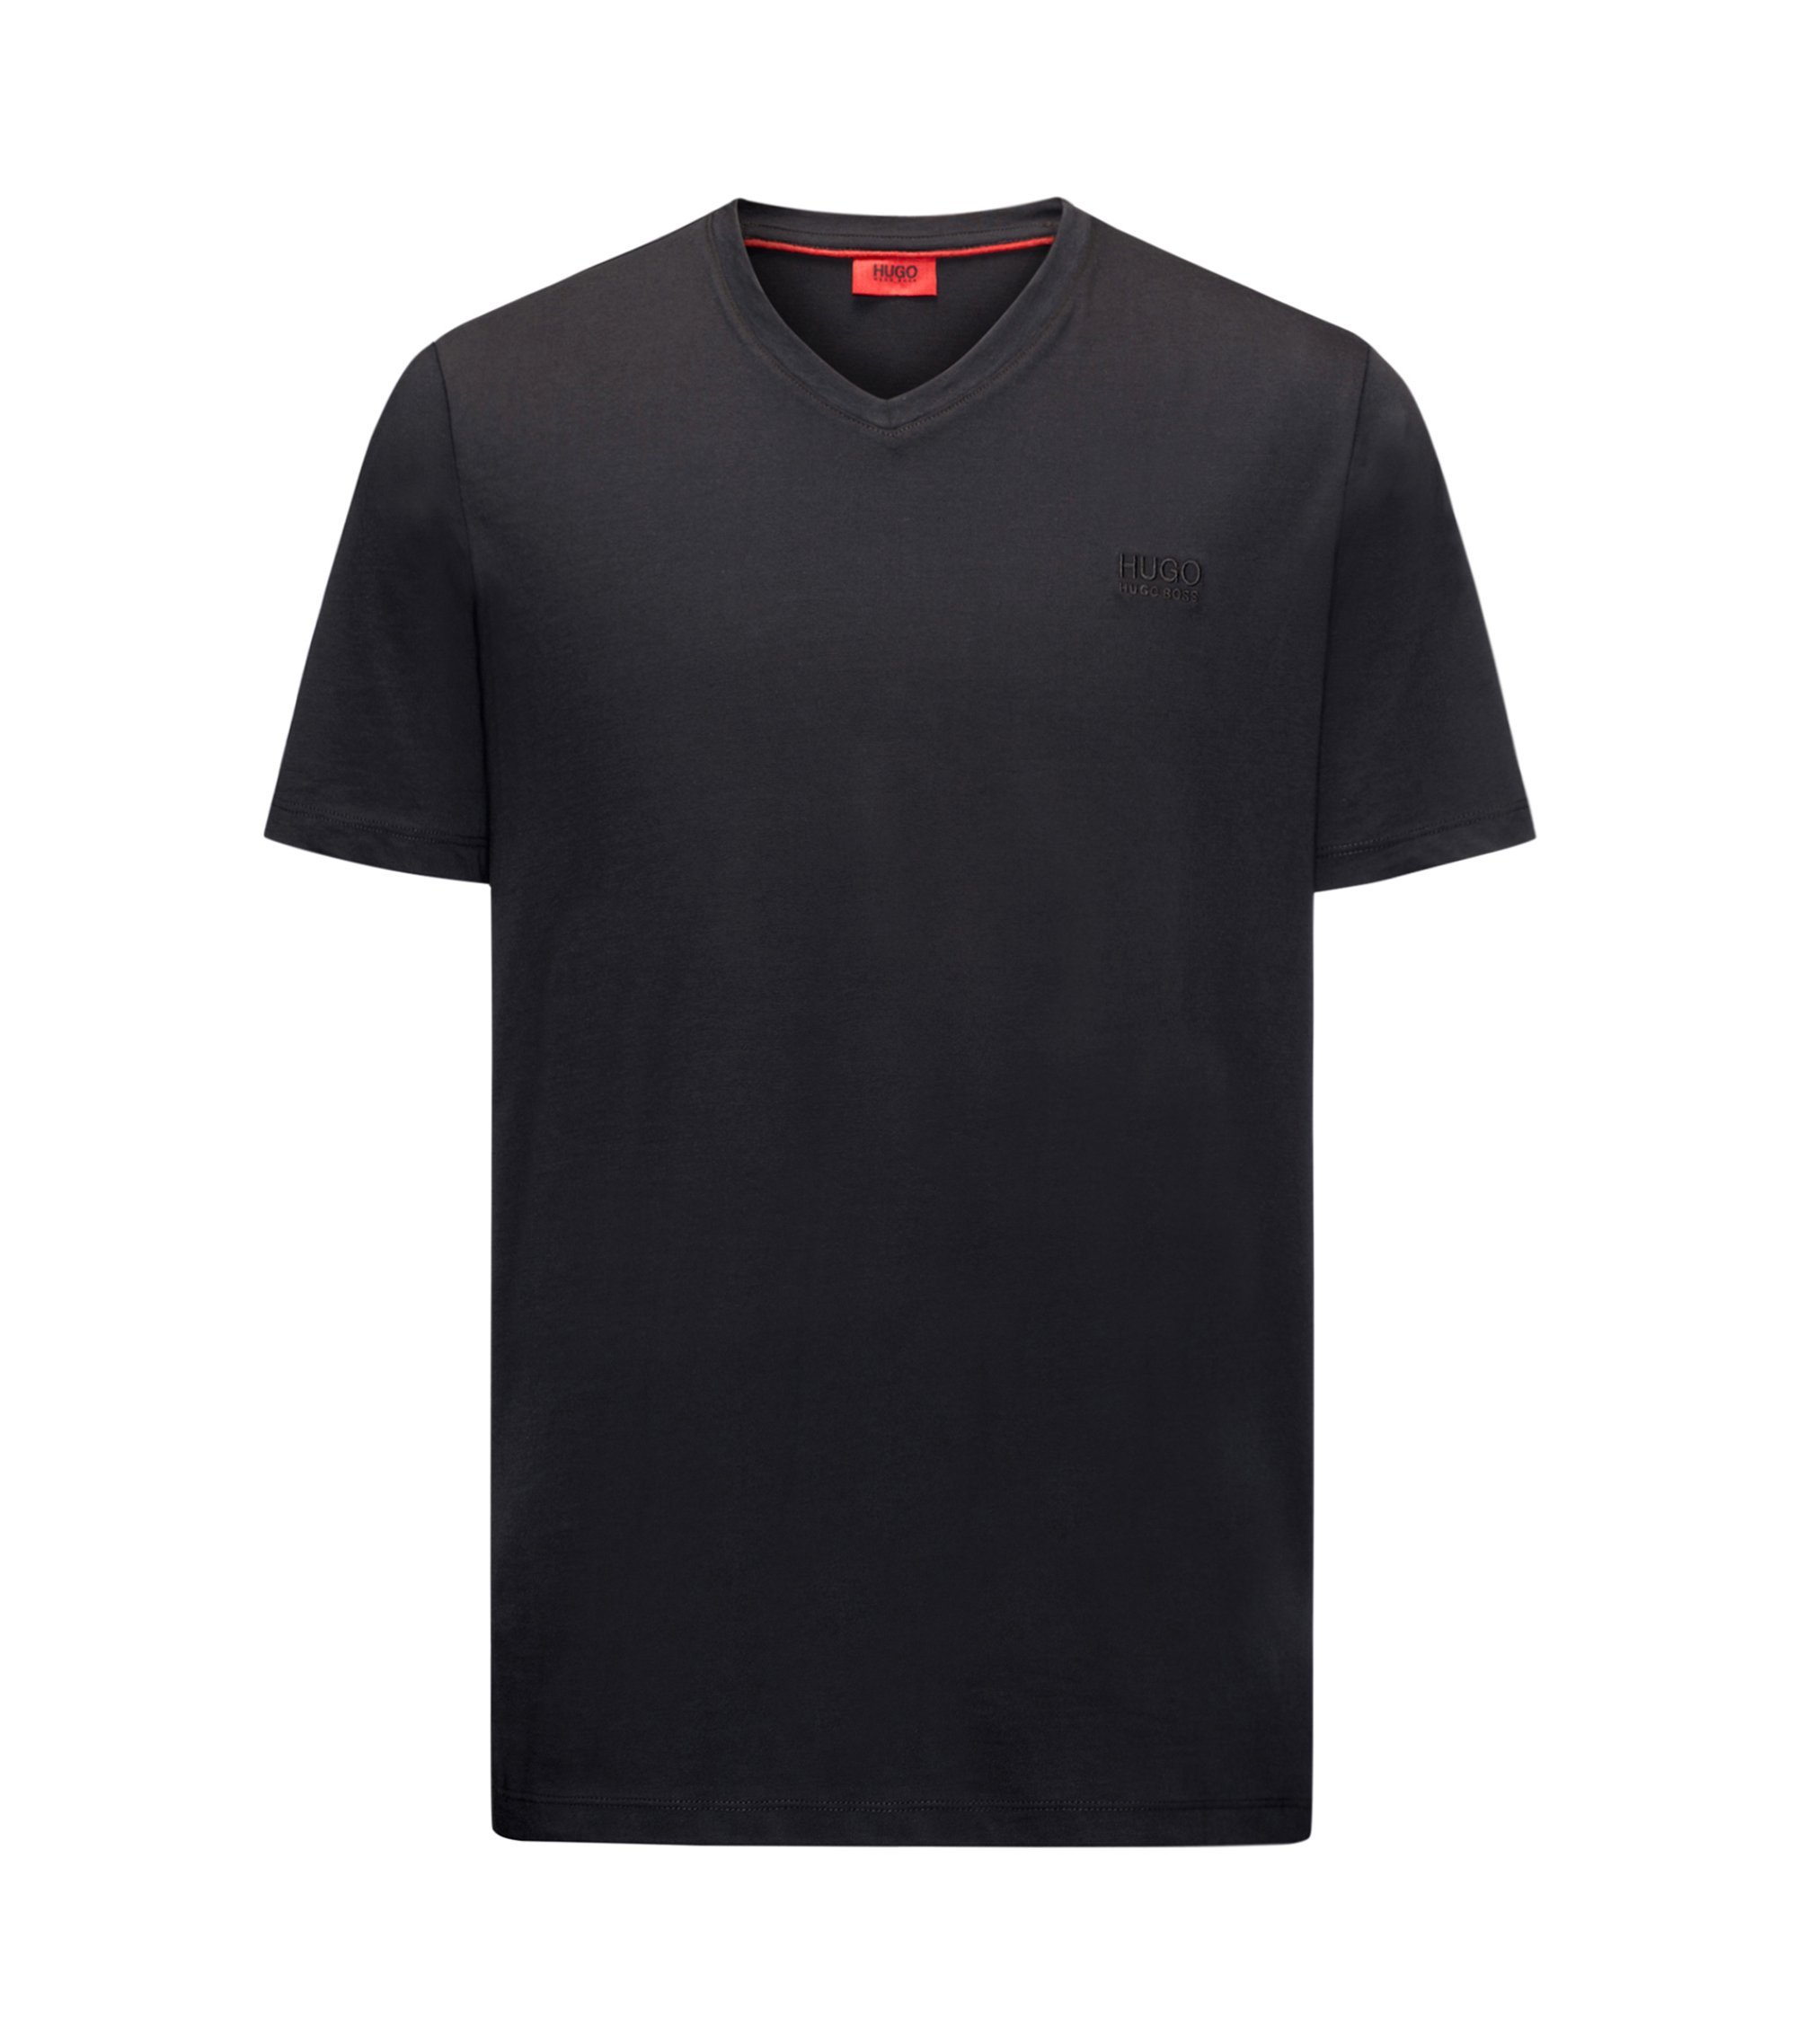 T-shirt regular fit con scollo a V in jersey di cotone con logo stampato, Nero